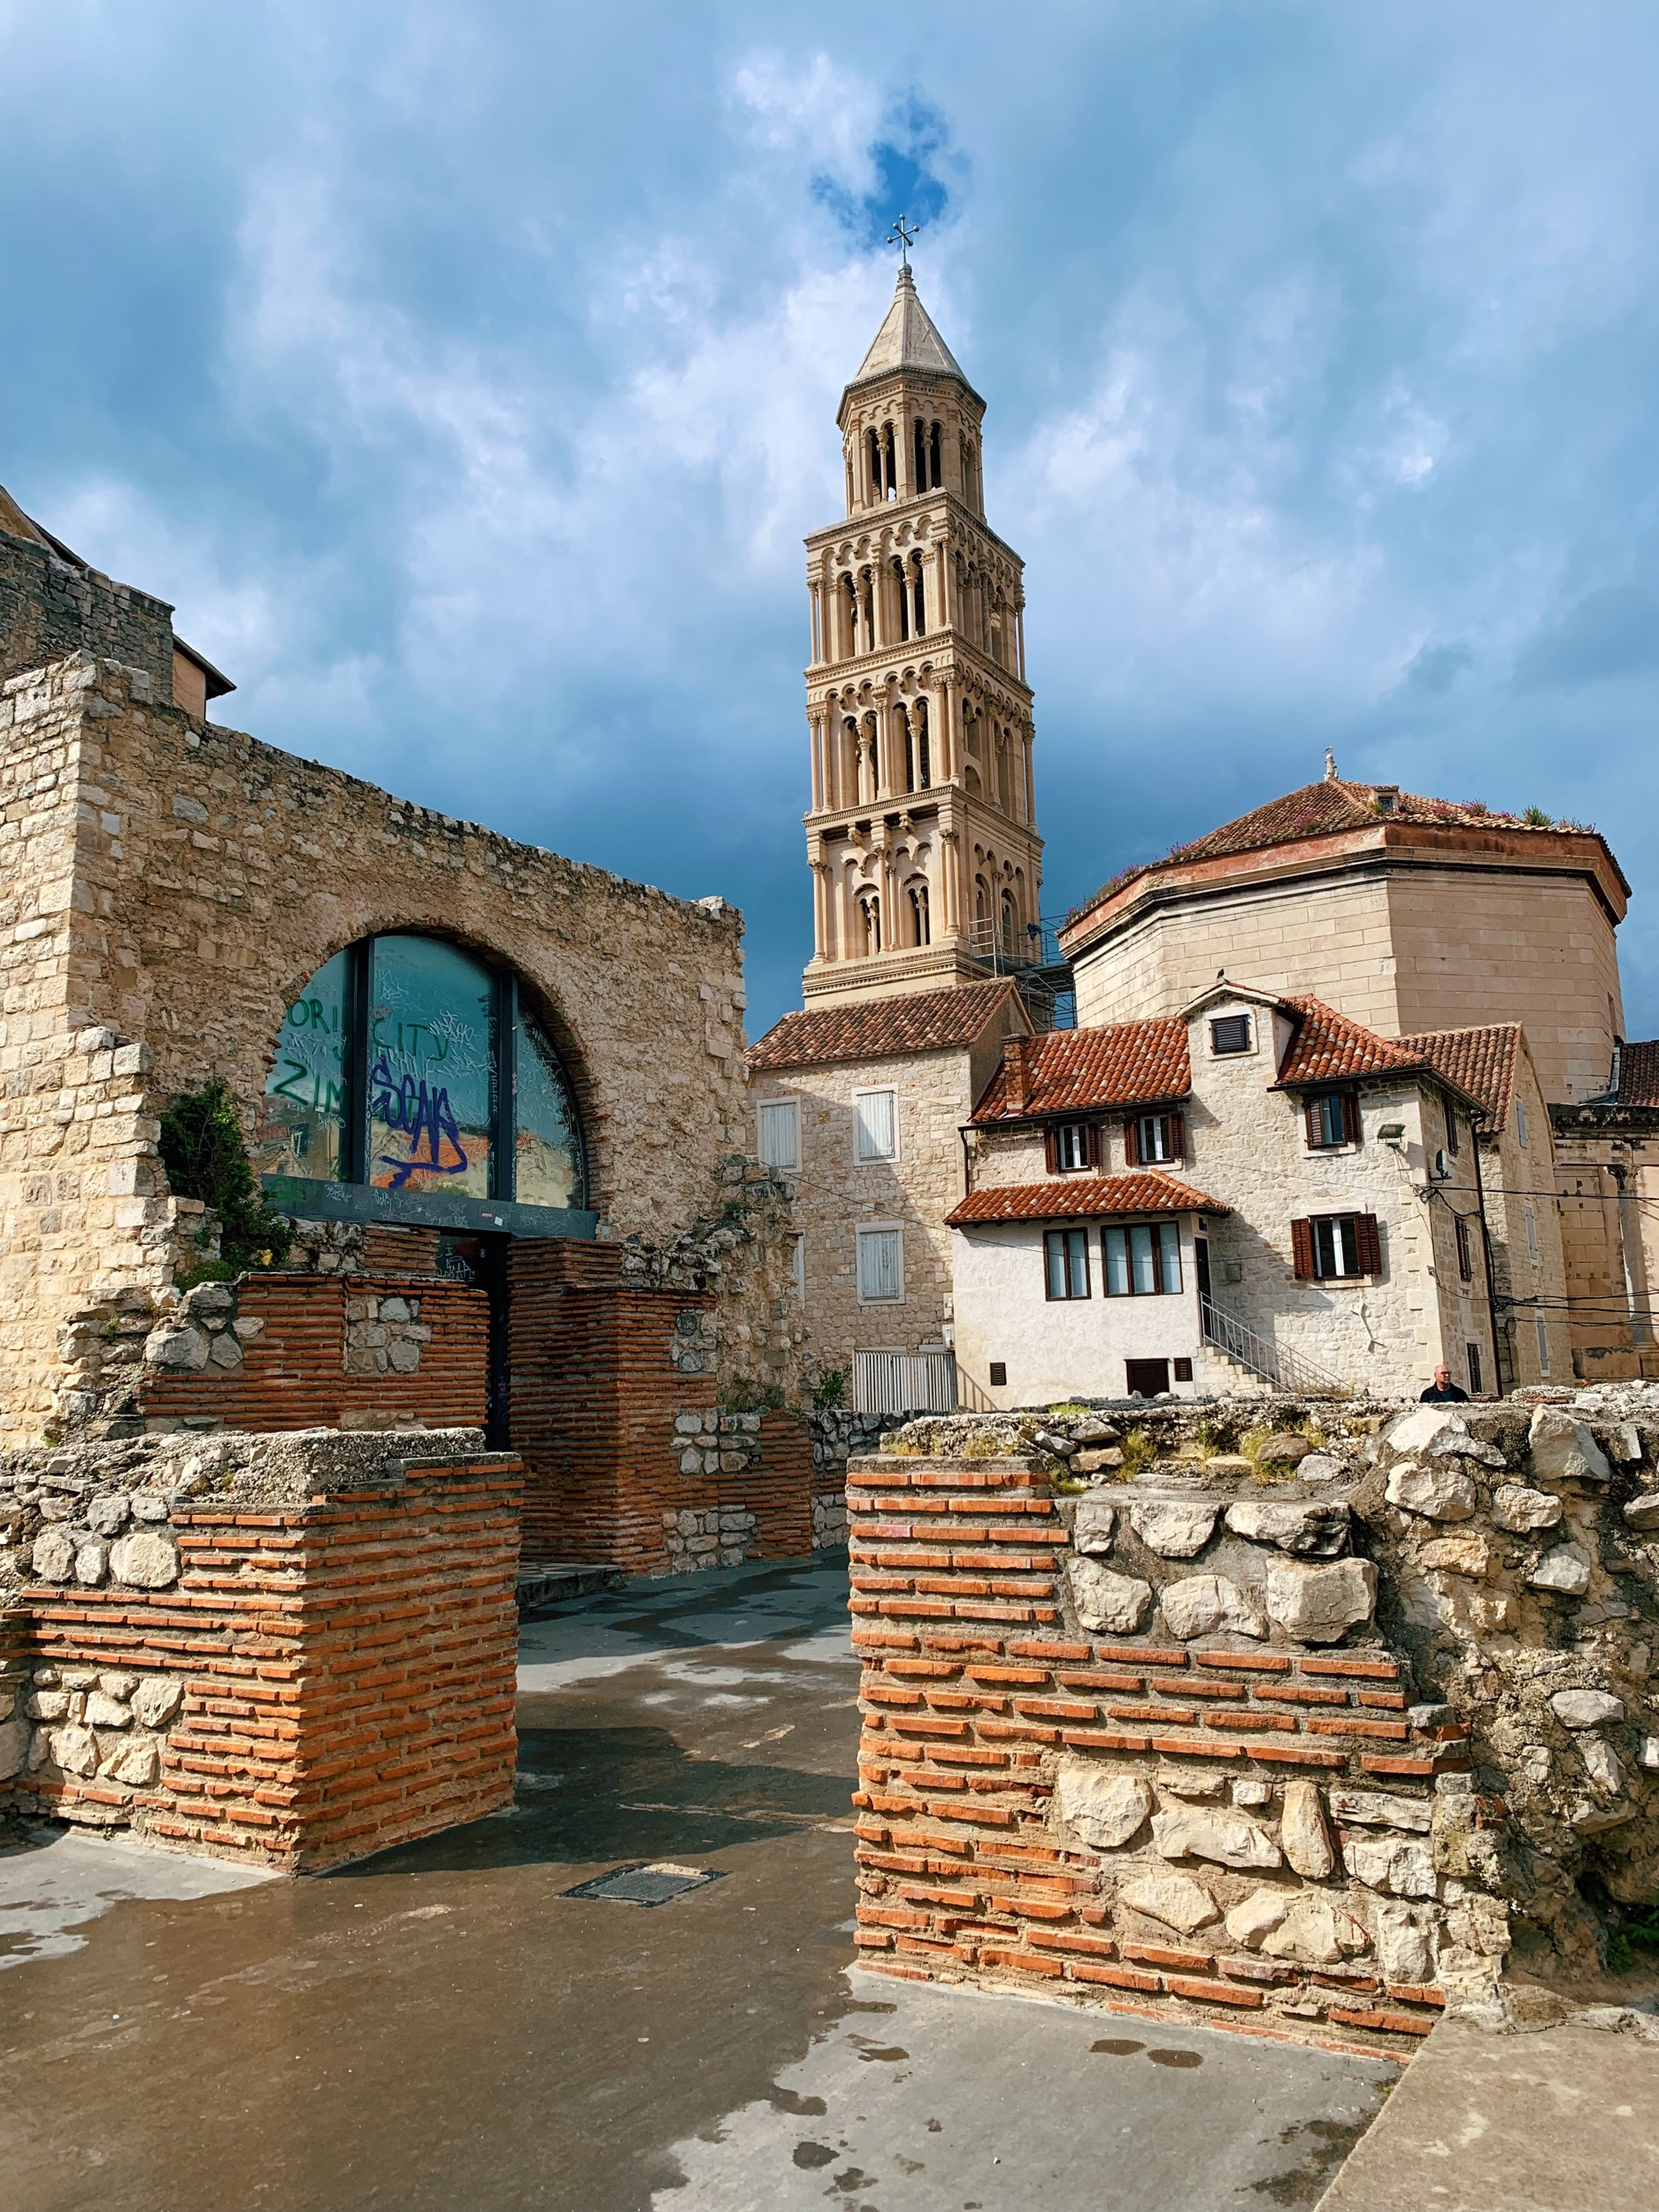 The Roman ruins of Split. The city is essentially the remains of Diocletian's palace.